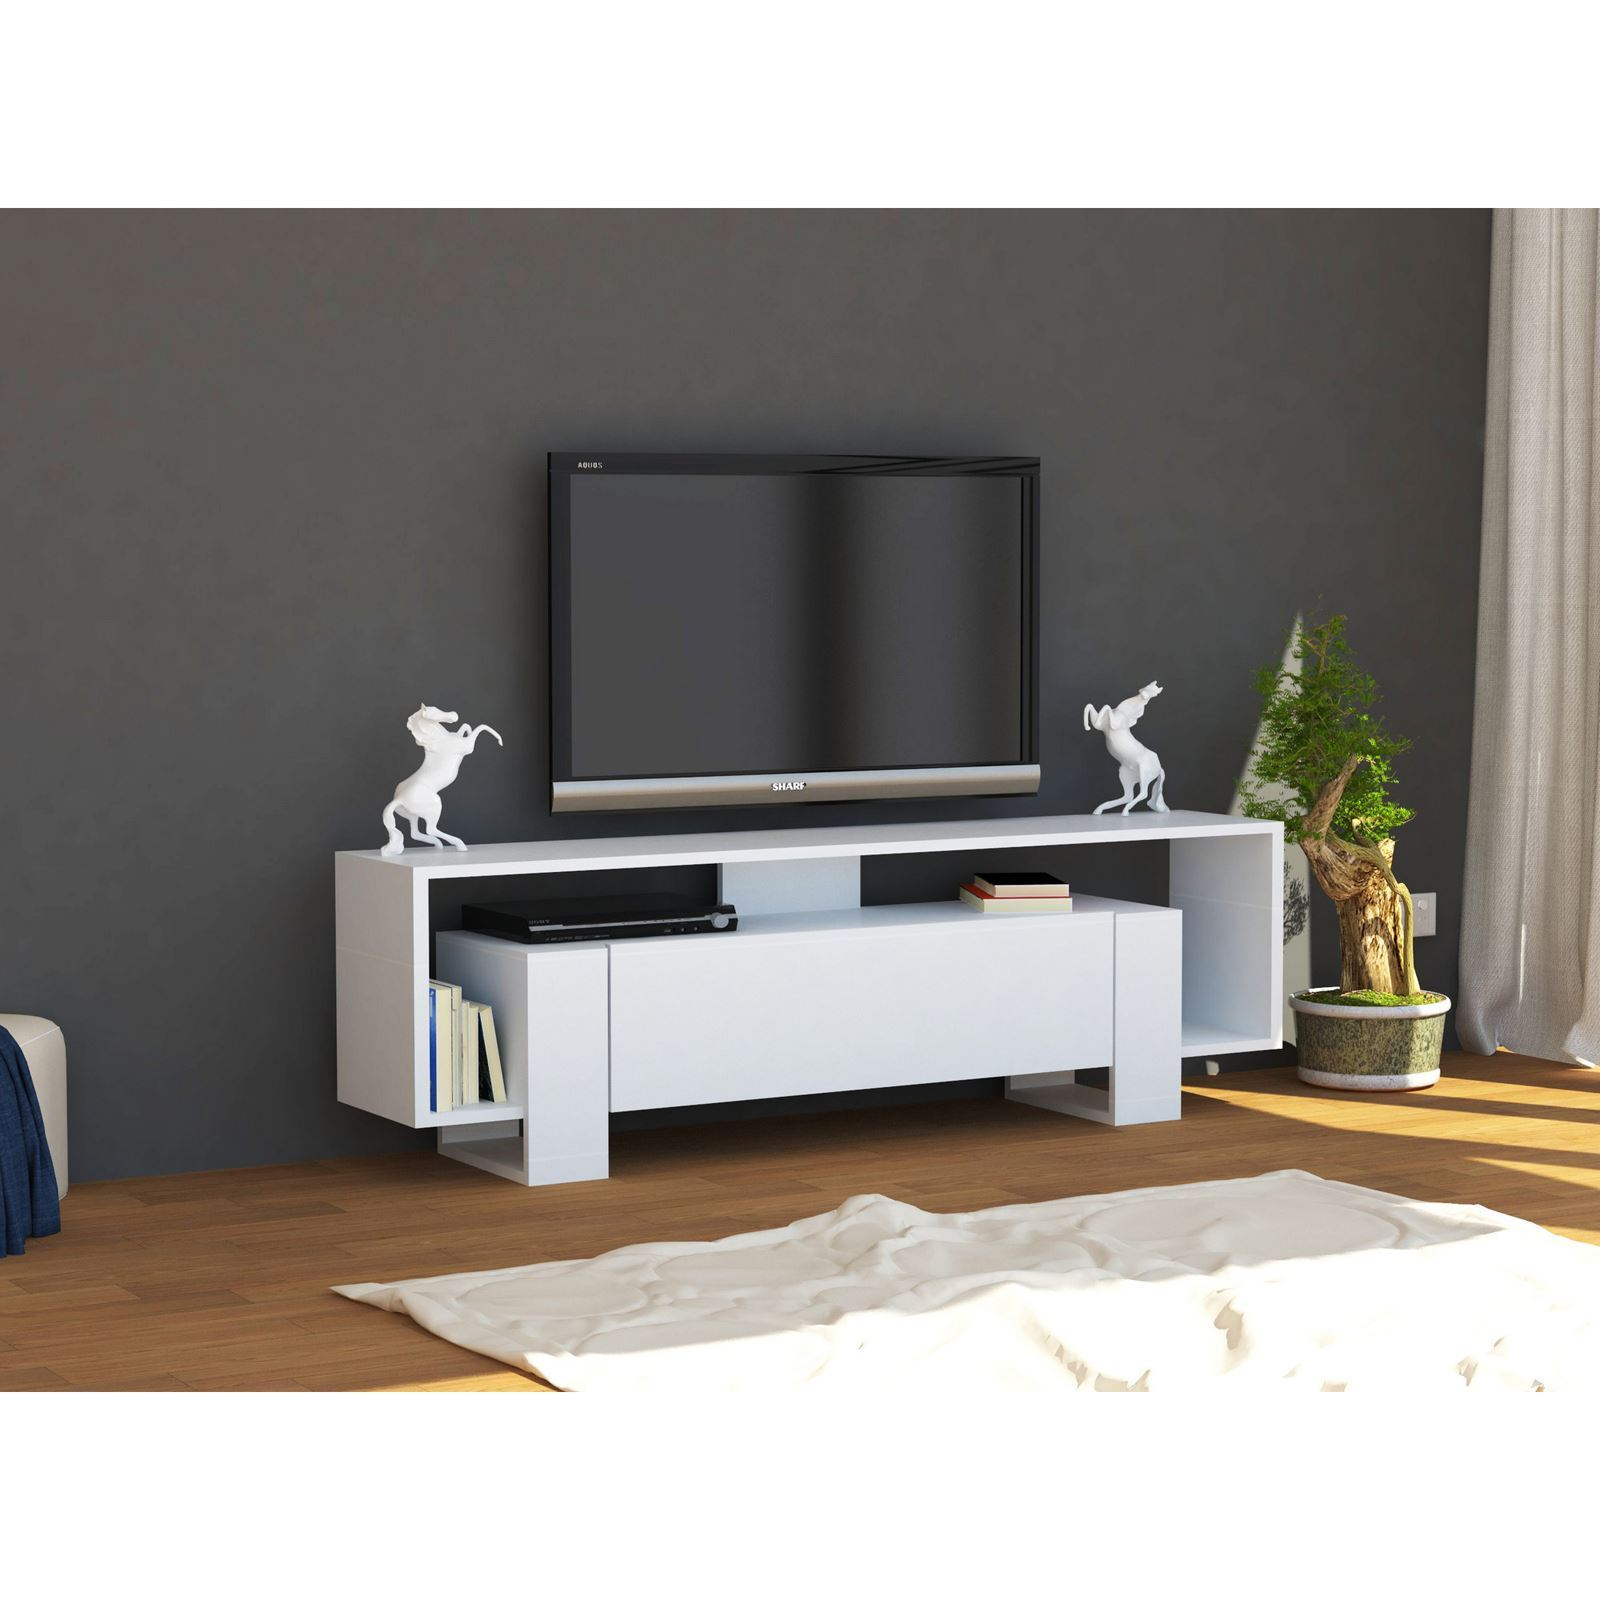 meuble tv wooden art mobilier design d coration d 39 int rieur. Black Bedroom Furniture Sets. Home Design Ideas